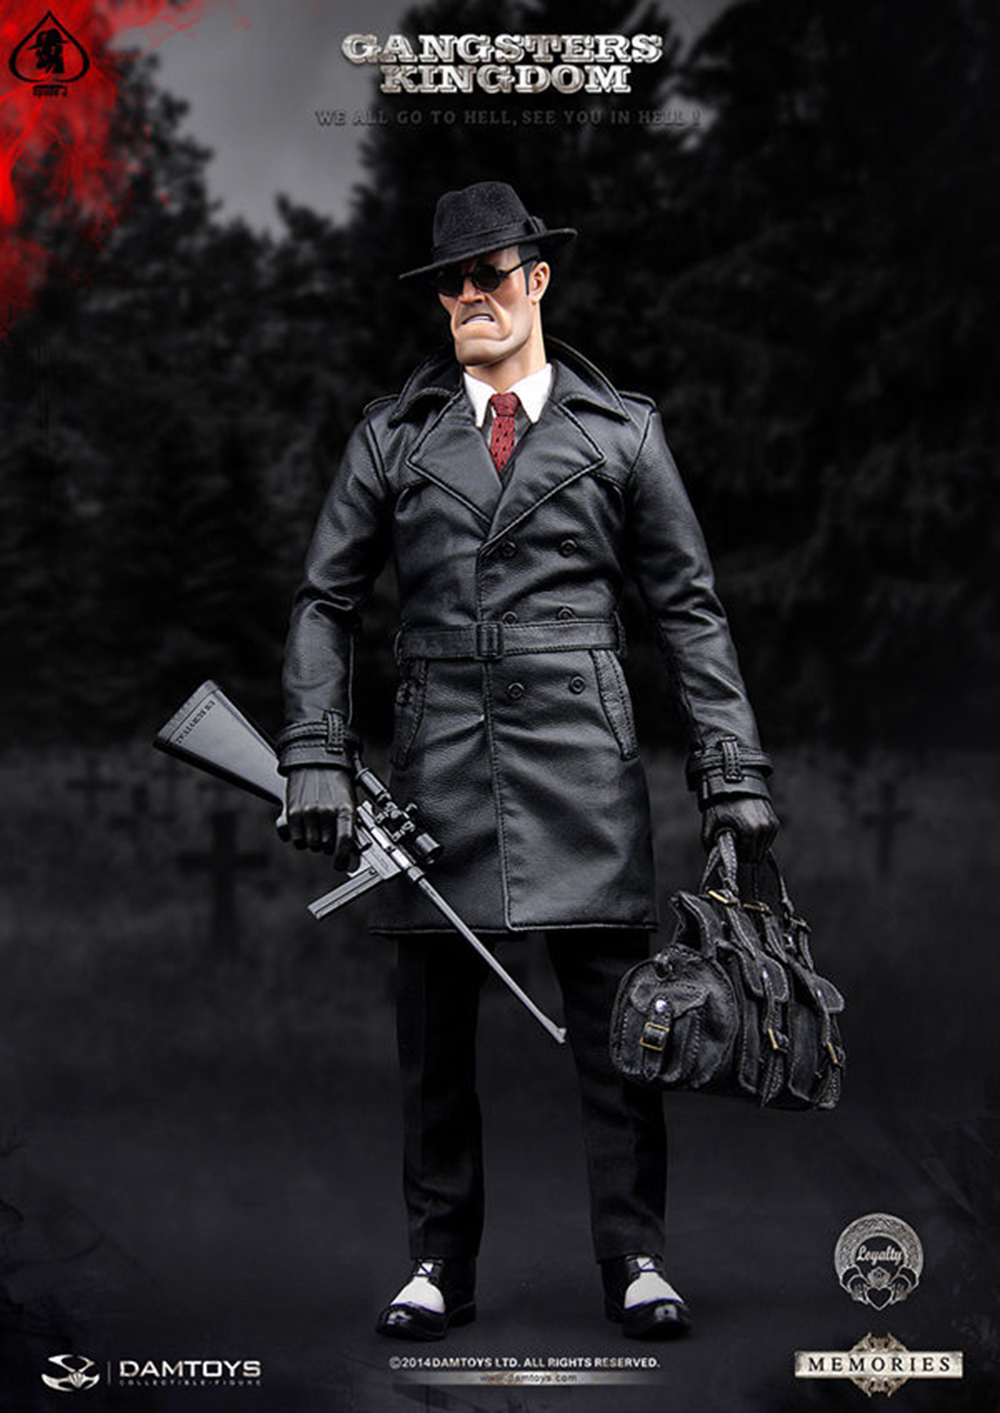 For collection DAMTOYS GK001MX 1/6 Gang's kingdom Spade J Memories Ver. Male Action Figure Collectible doll toys full set 1